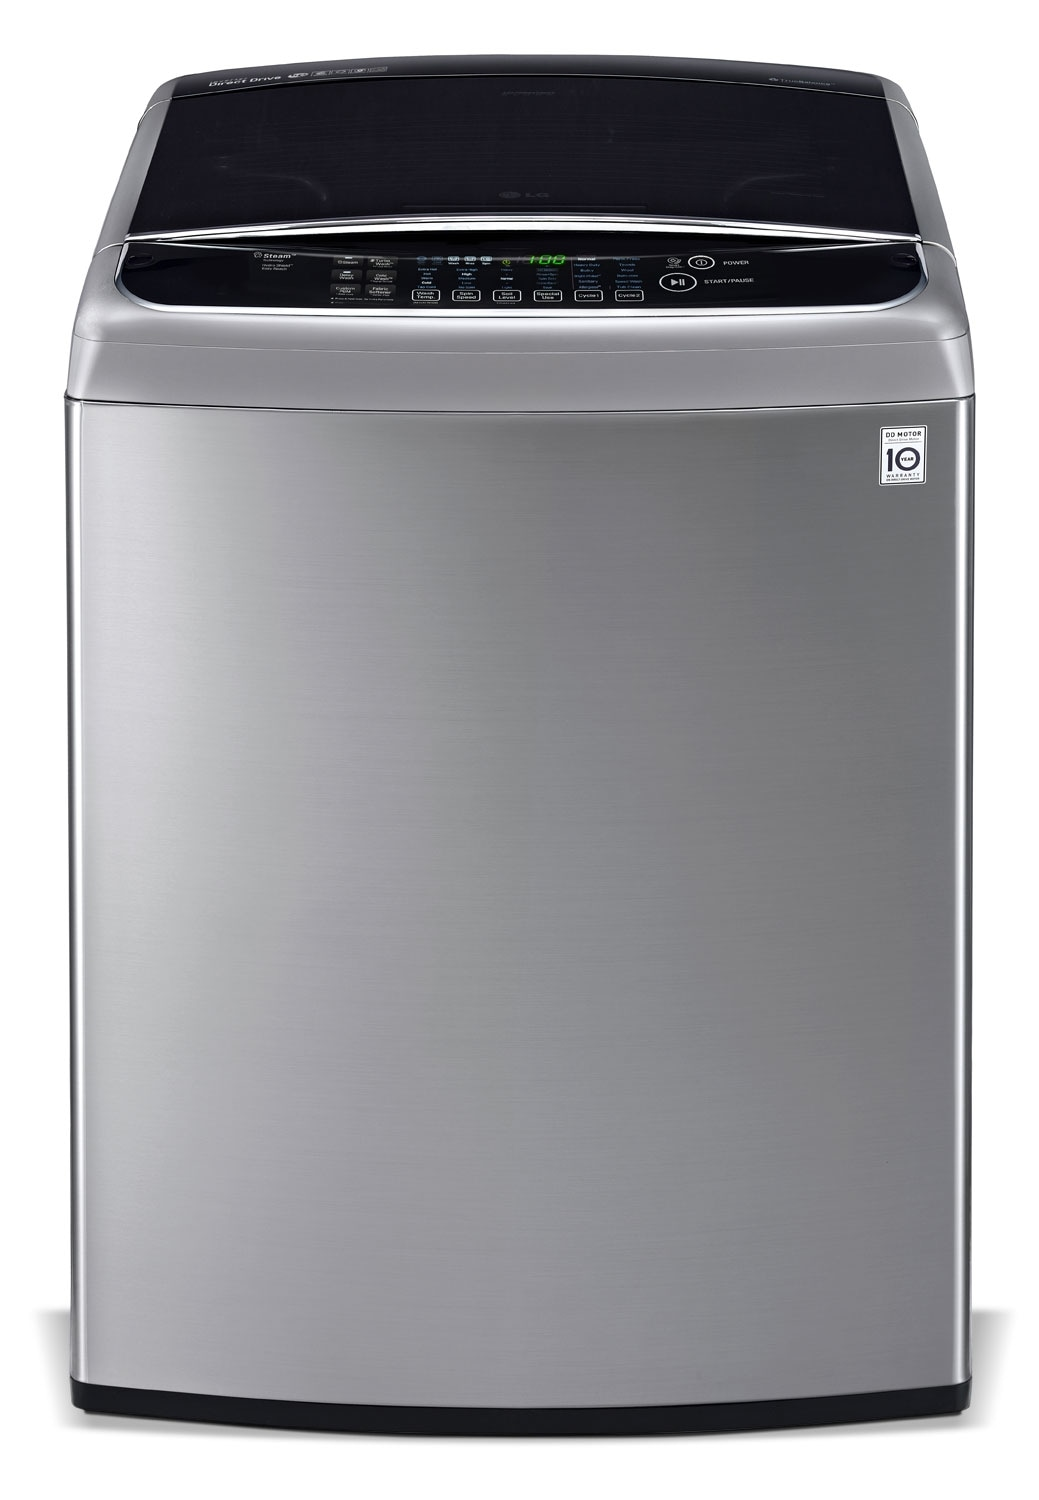 LG Appliances Graphite Steel Top-Load Washer (5.8 Cu. Ft.) - WT1801HVA